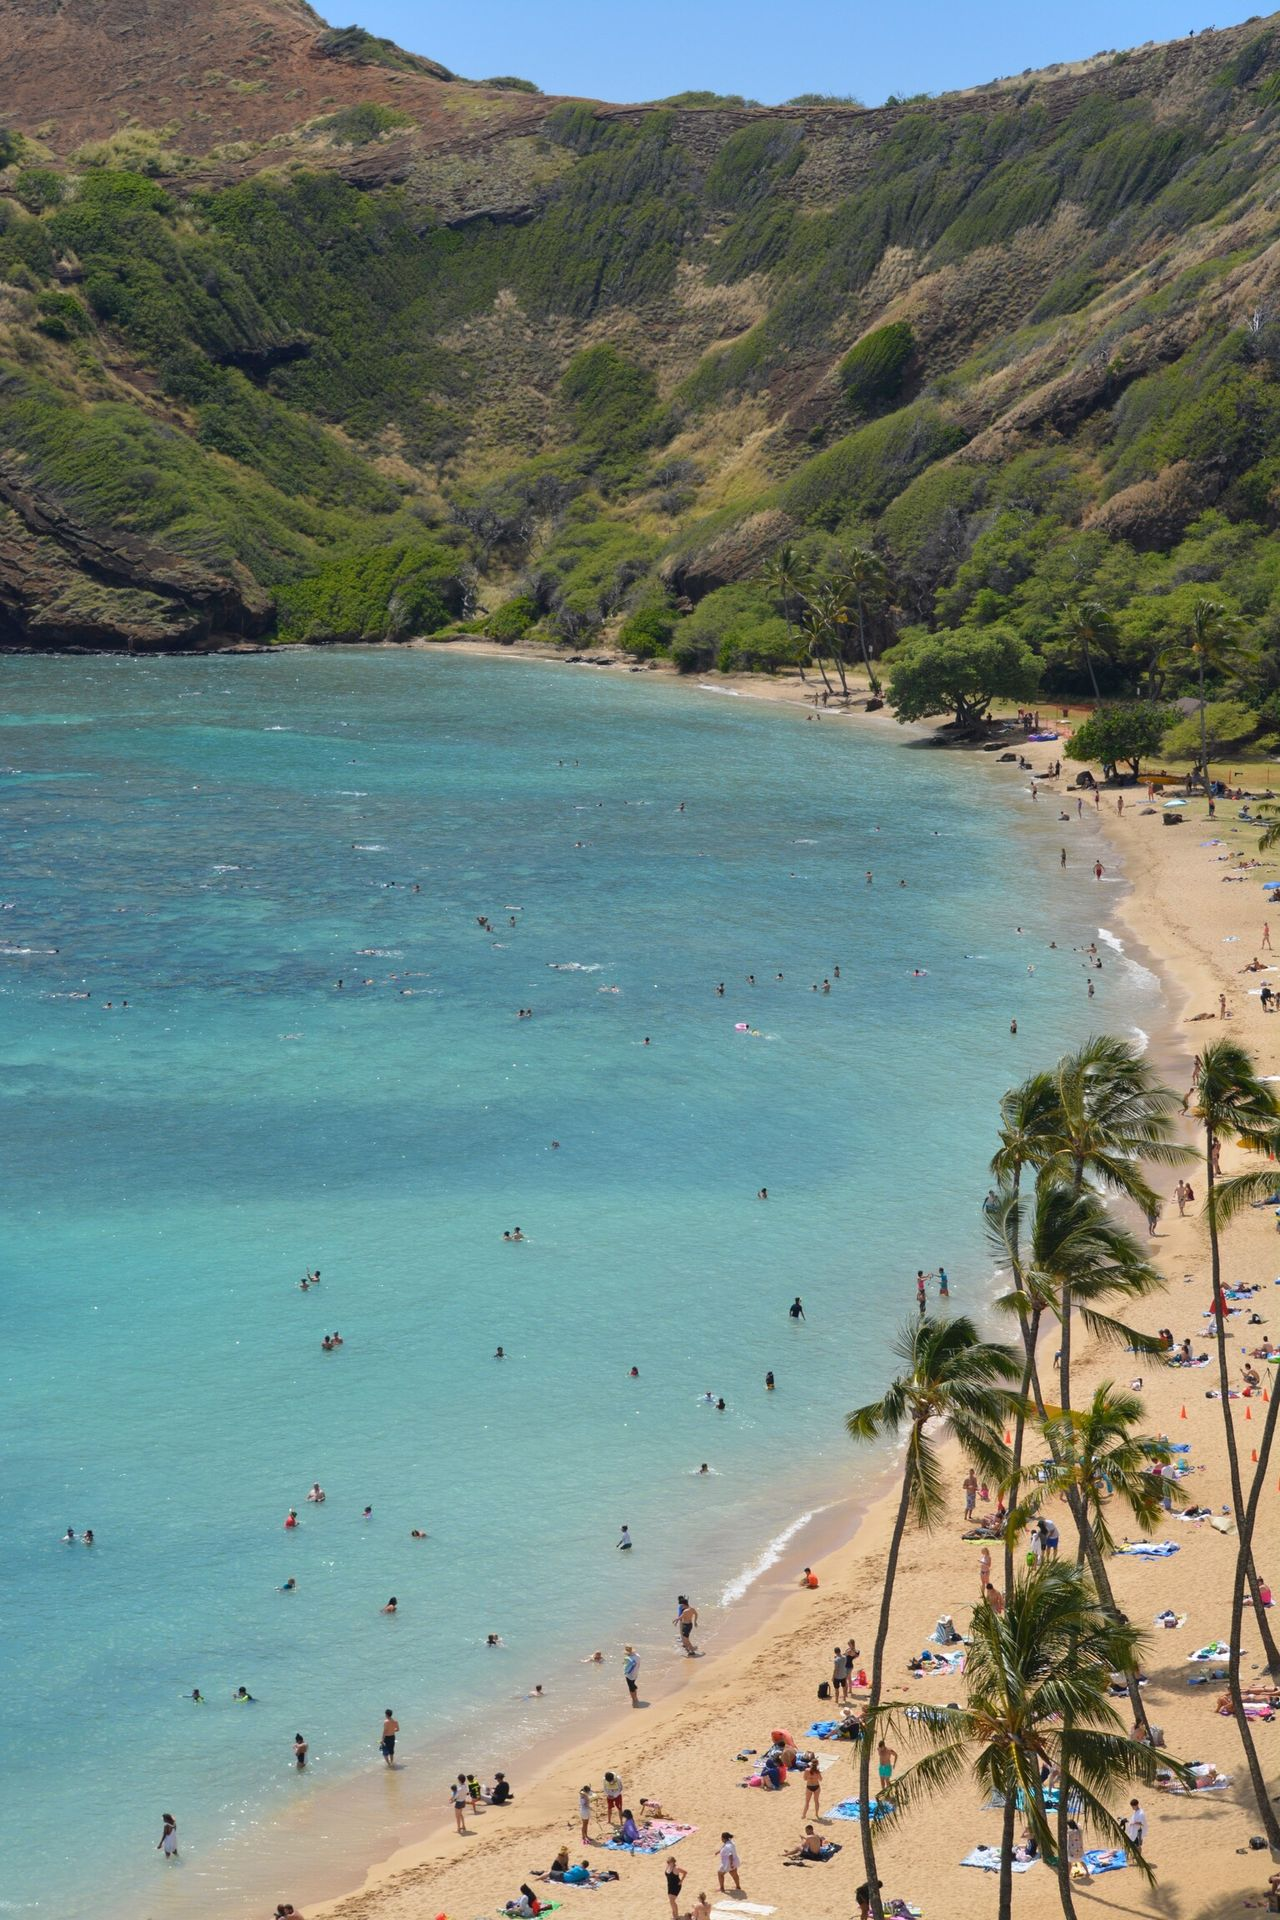 Beach Sea Sand Water Scenics Coastline Travel Destinations Tourism Outdoors Vacations Horizon Over Water Large Group Of People Coastal Feature Beauty In Nature Sky Nature Tranquil Scene Tree Day People Oahu, Hawaii Beachphotography Landscape